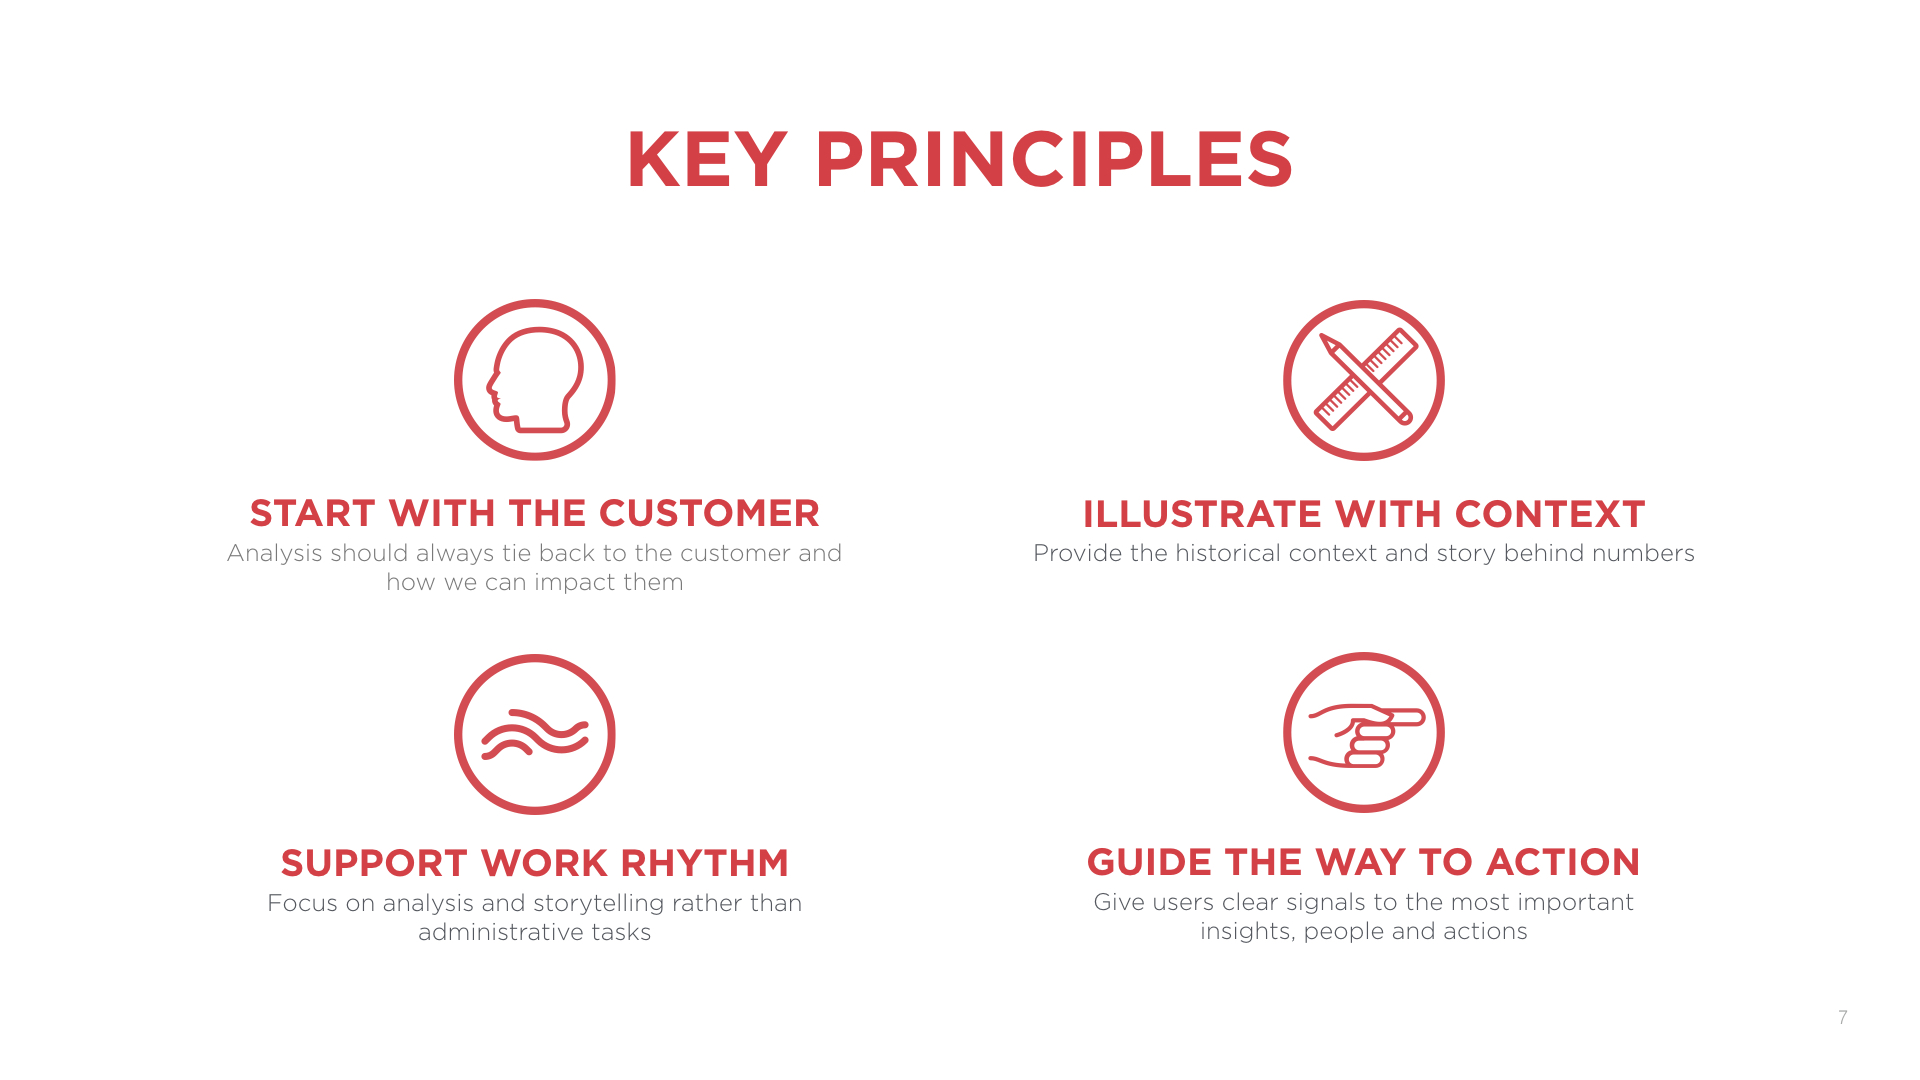 Defined design principles from user research